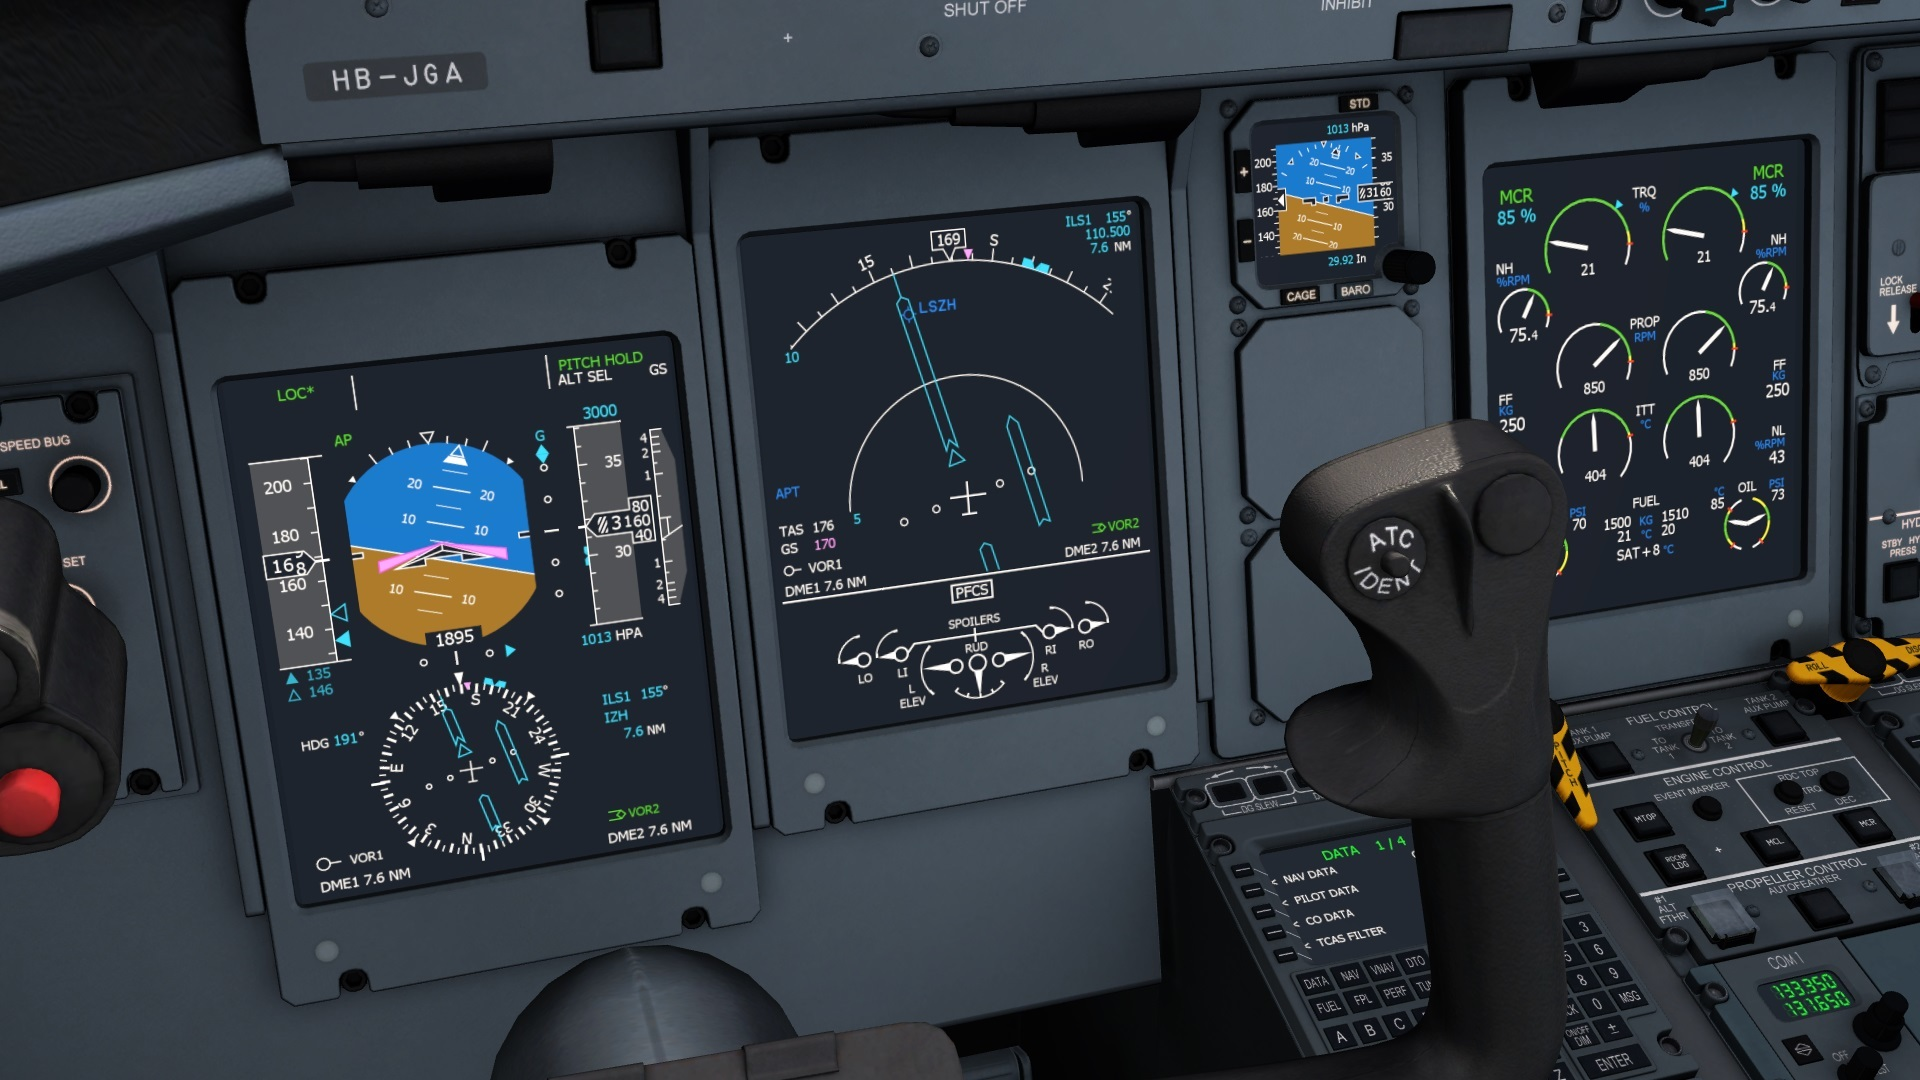 Jul 26, 2017 Q400 Aircraft and Major Update Released Today